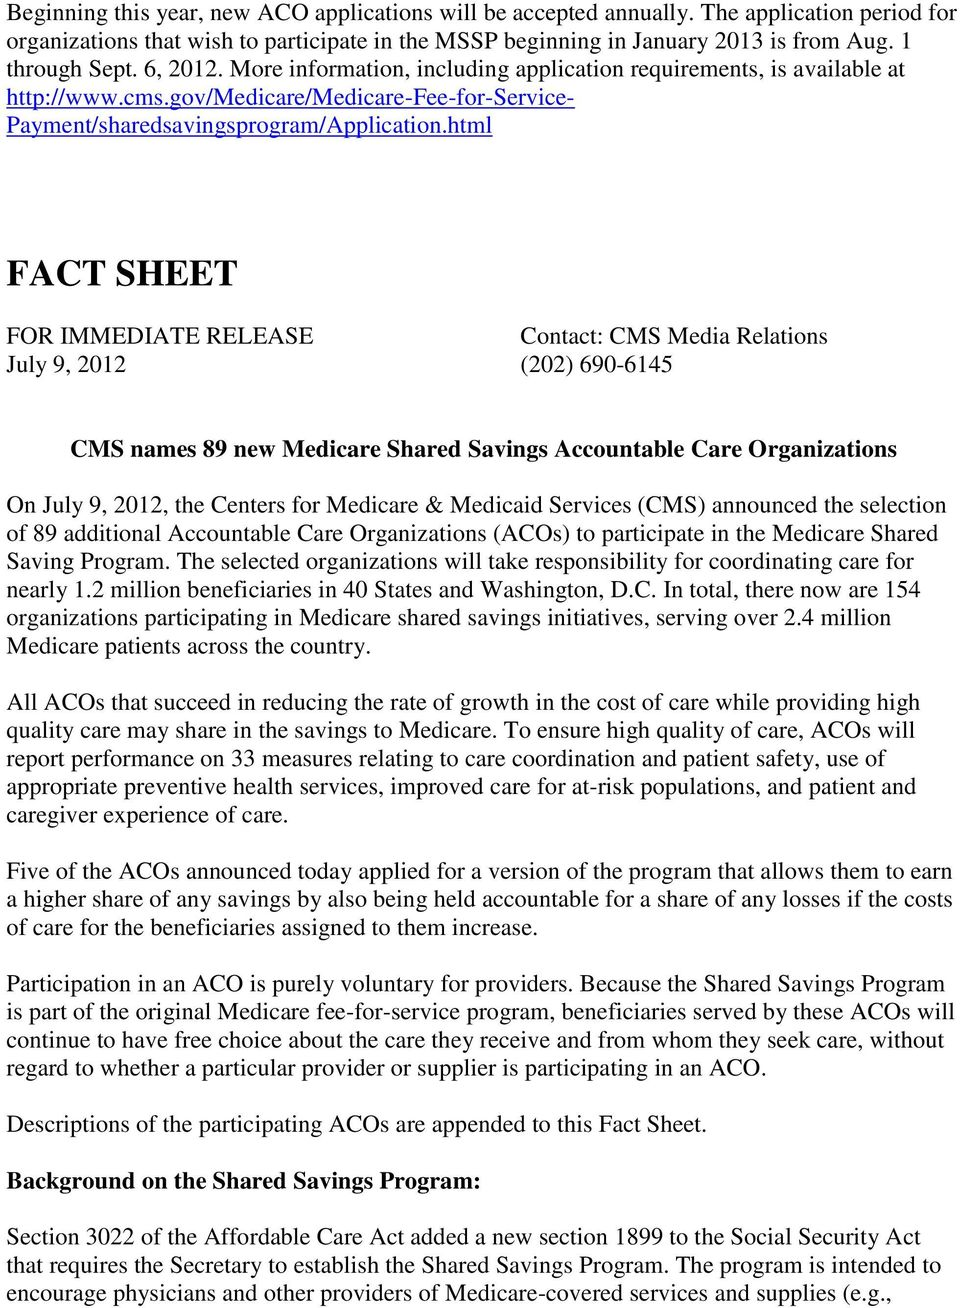 html FACT SHEET FOR IMMEDIATE RELEASE Contact: CMS Media Relations July 9, 2012 (202) 690-6145 CMS names 89 new Medicare Shared Savings Accountable Care Organizations On July 9, 2012, the Centers for